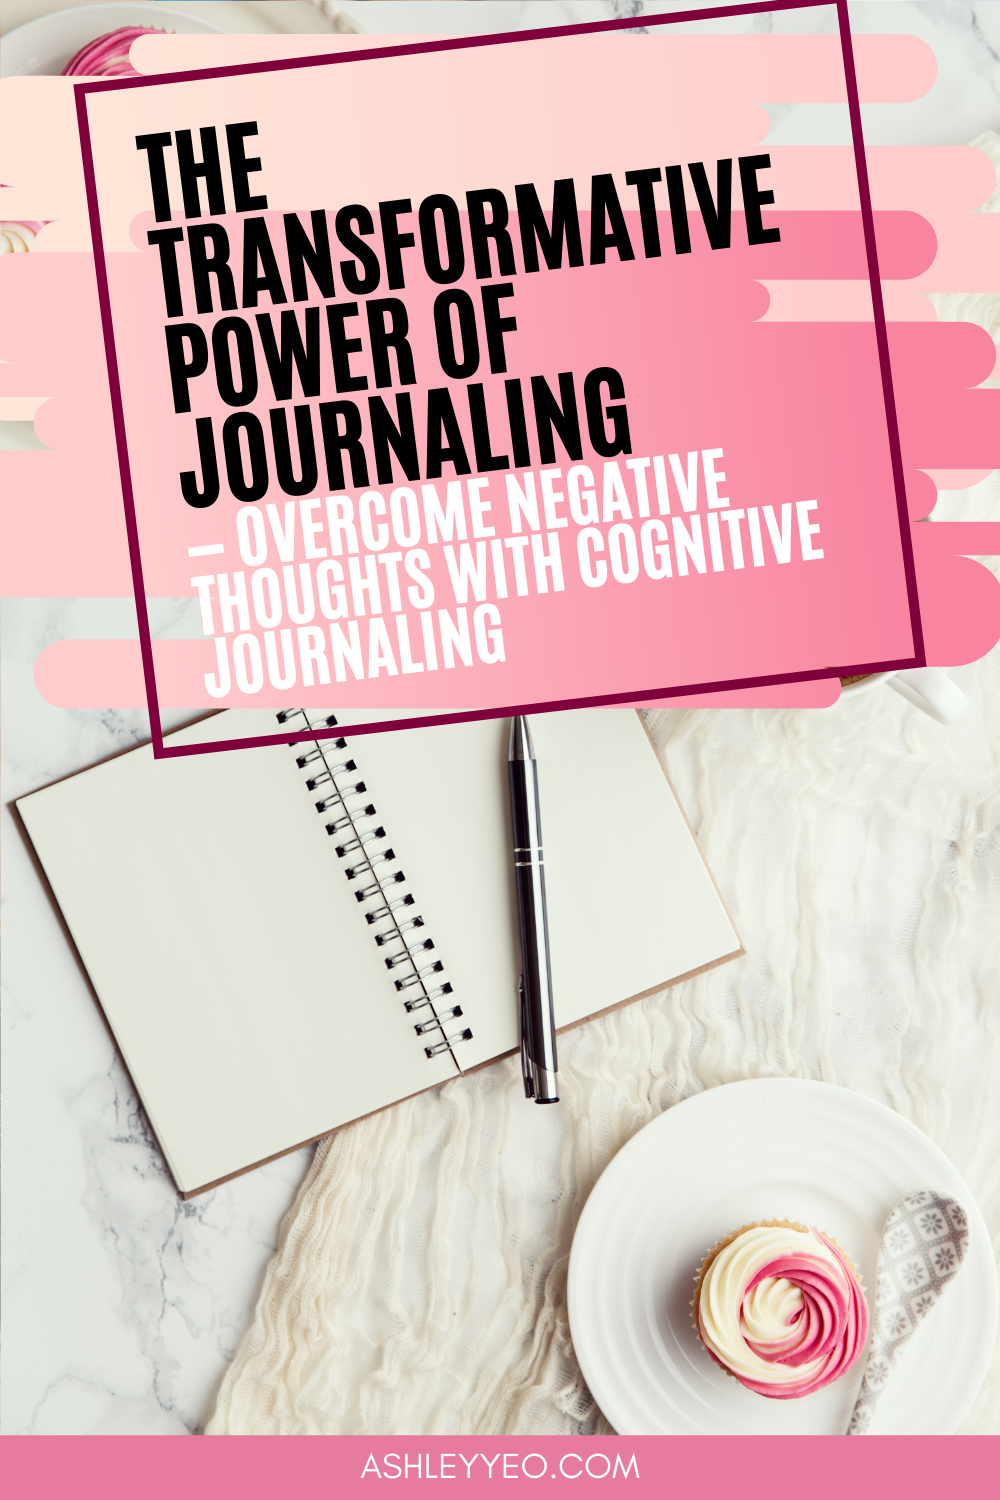 The Transformative Power of Journaling — Overcome Negative Thoughts With Cognitive Journaling